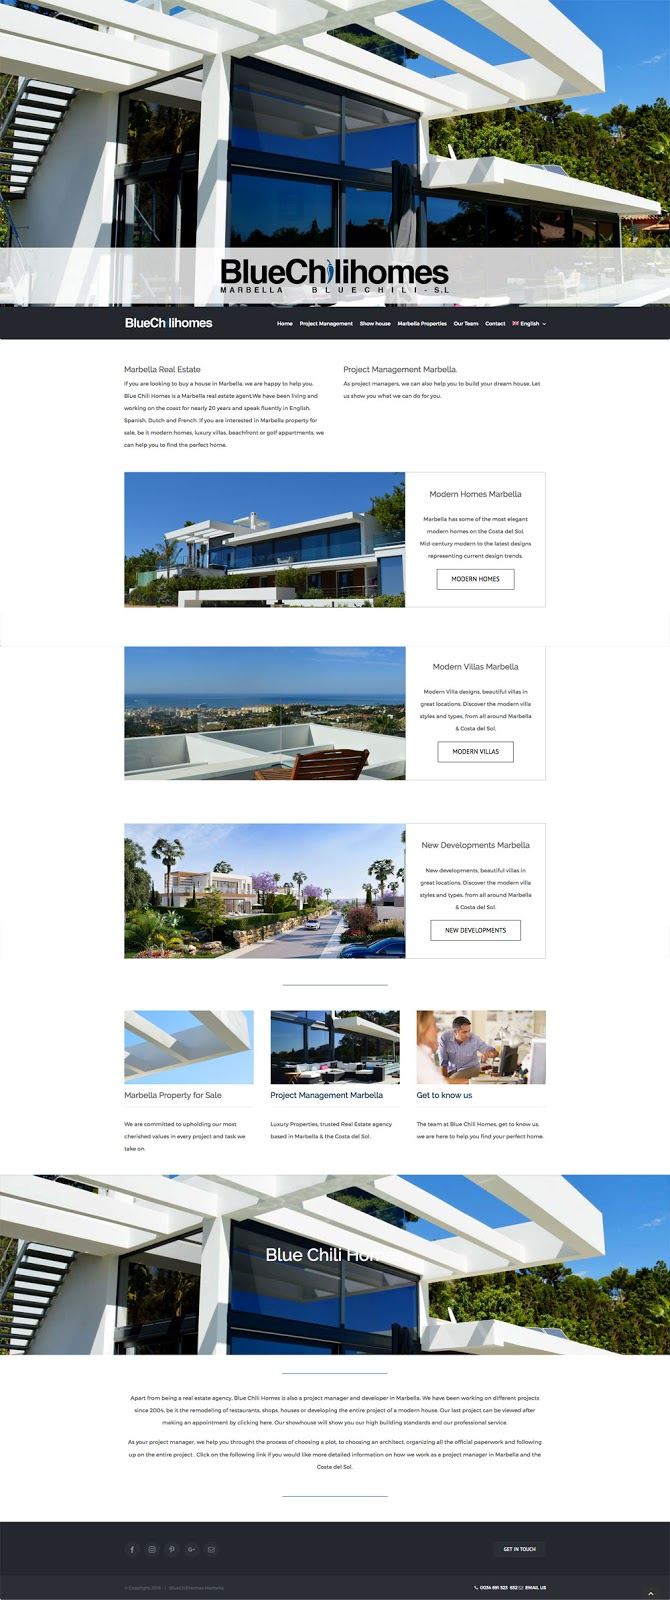 Web Design idea: crisp, clean, and easy to navigate. They were very interested in controlling all aspects of the website, and having multiple languages that are easy to control and are Google optimised for each language. Priority on the home page to provide general information about their Property listings, New developments in Marbella and the Costa del Sol. Contact information, including a phone number, contact form and physical location.